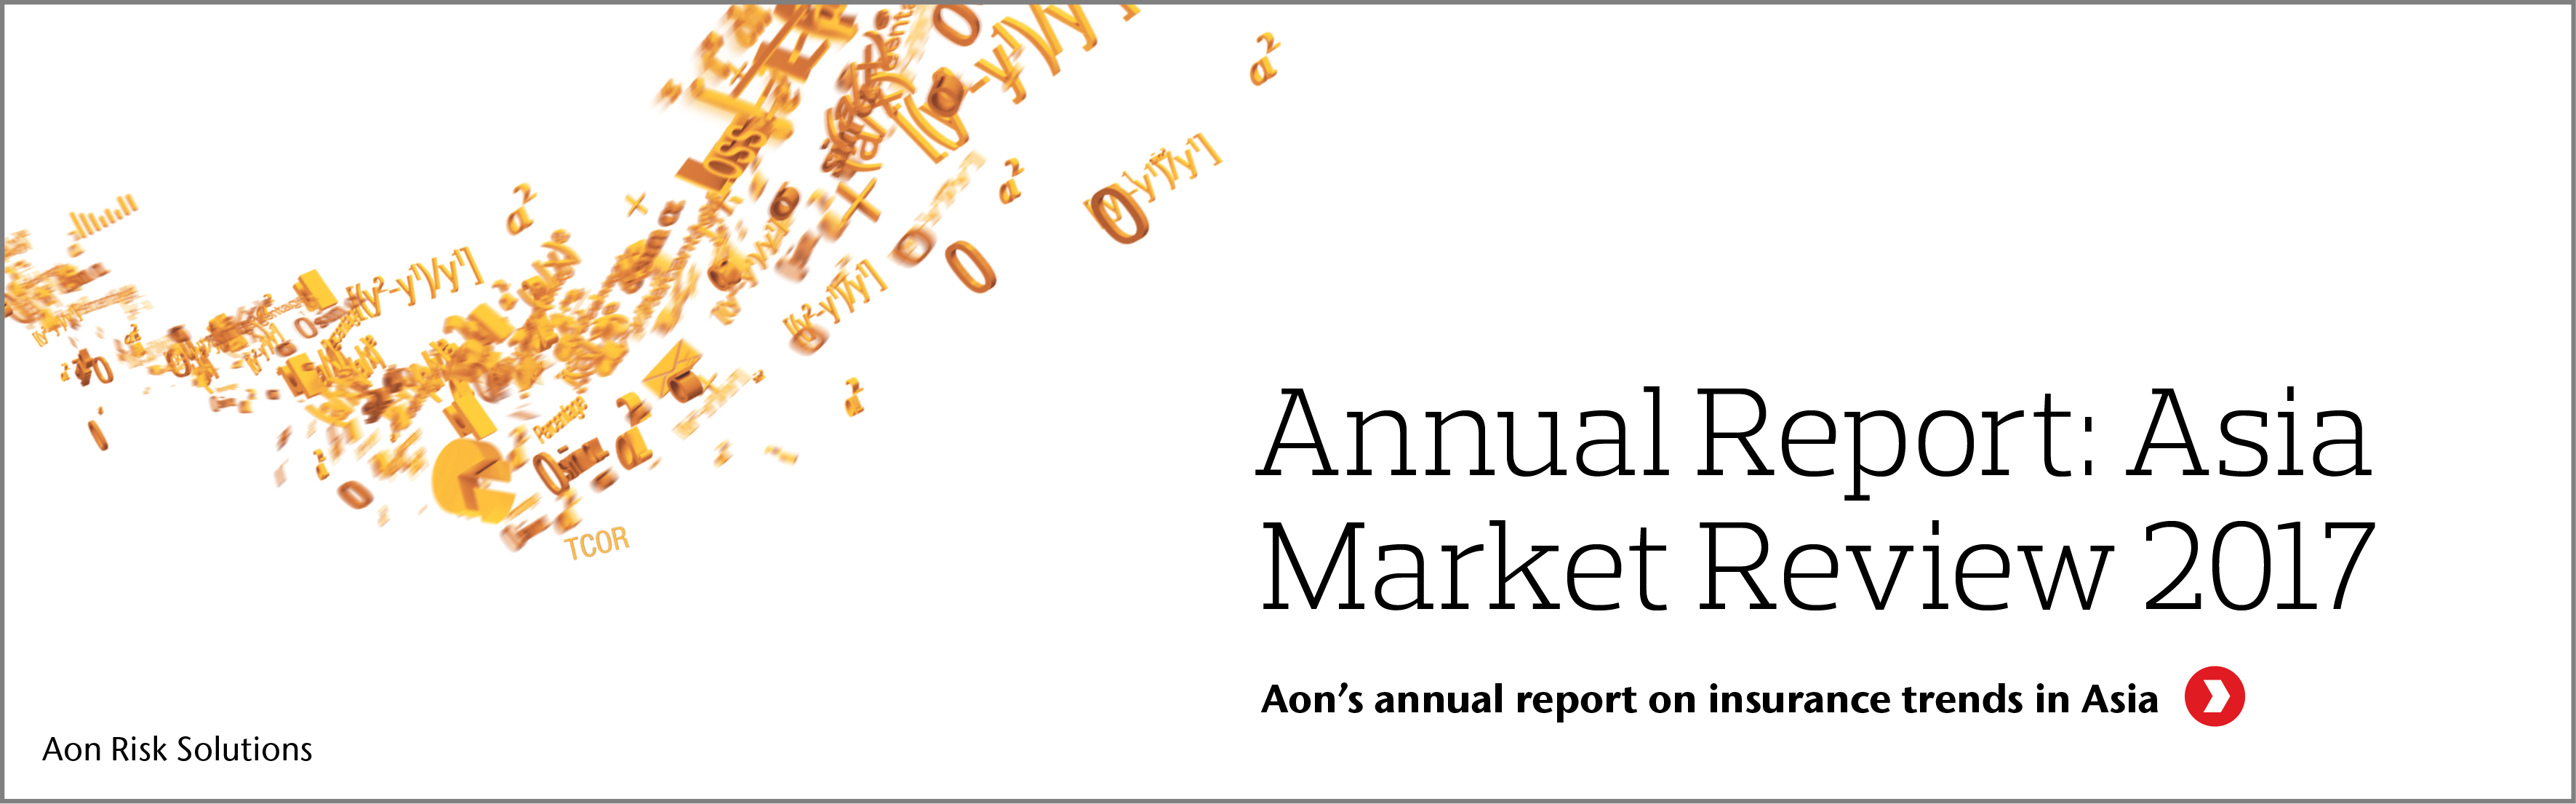 Annual Report: Asia Market Review 2017